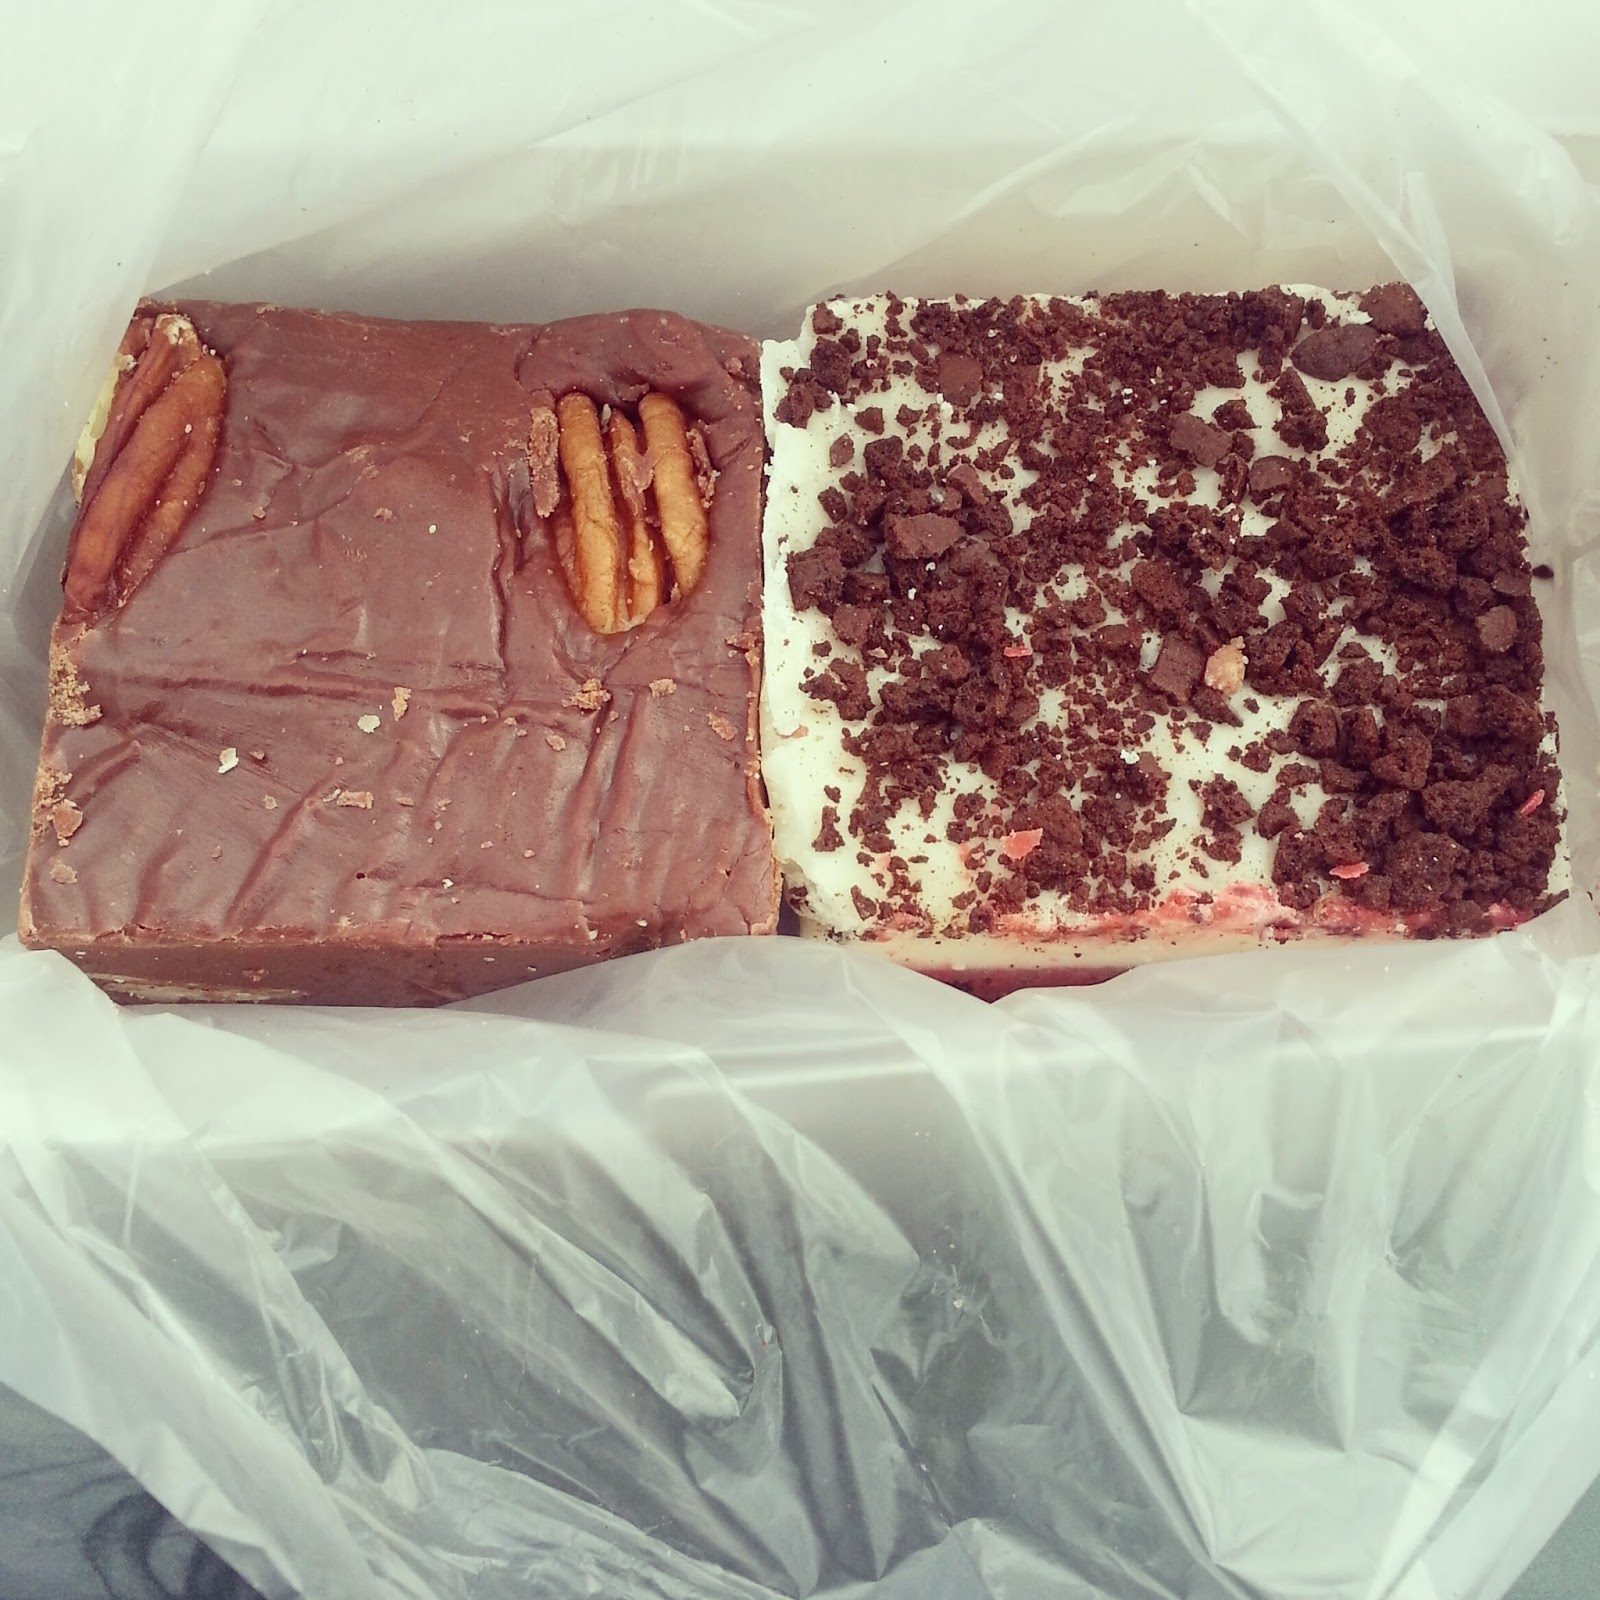 pecan fudge and red velvet fudge from buc-ee's